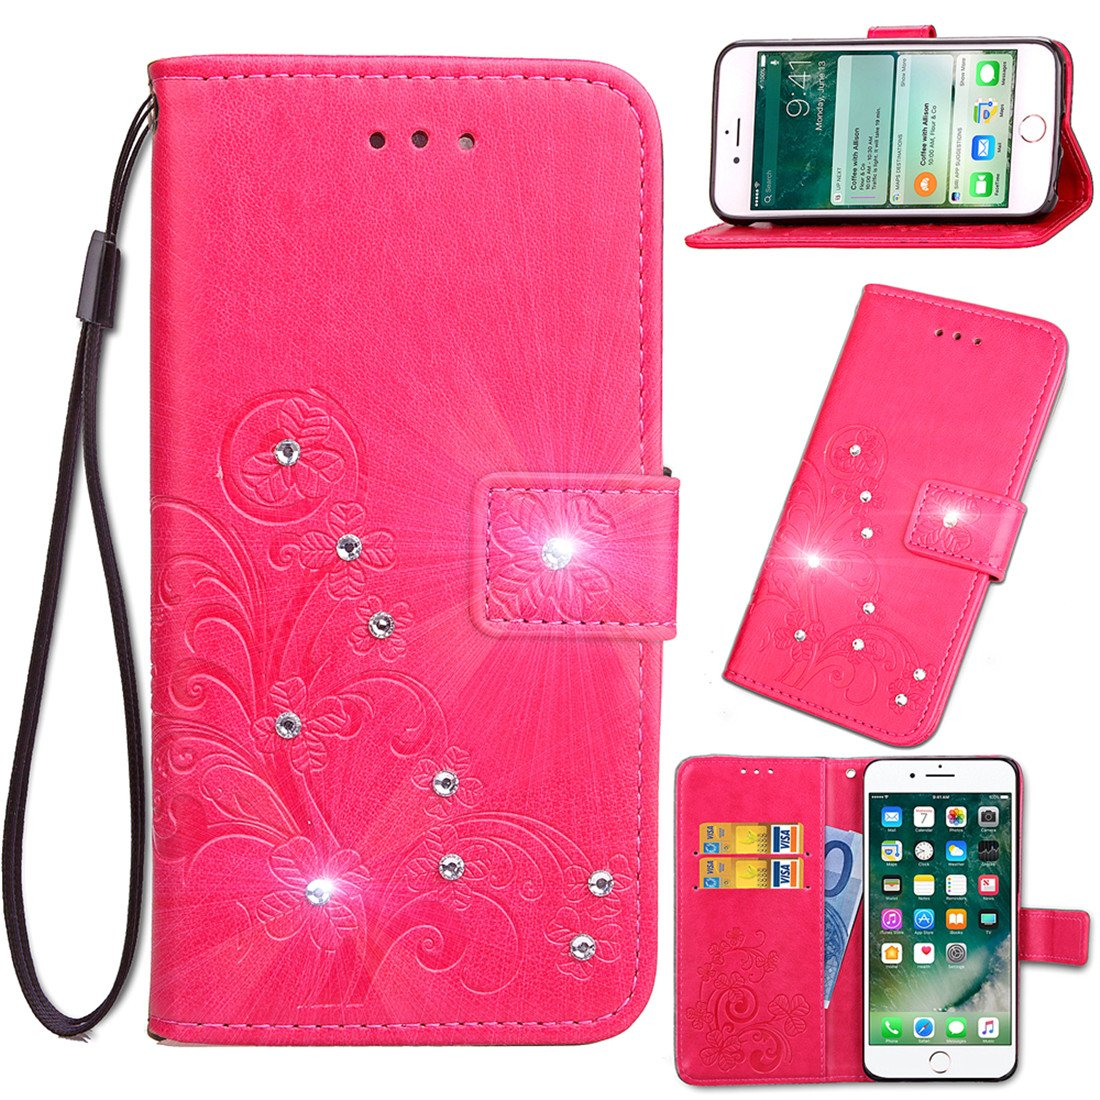 LG V30 Case, LG V30 Wallet Case, Lwaisy Bling Crystal Rhinestone Emboss Floral Clover PU Leather Wallet Flip Protective Case Cover with Card Slots and Stand for LG V30 (2017) - Bling/Purple